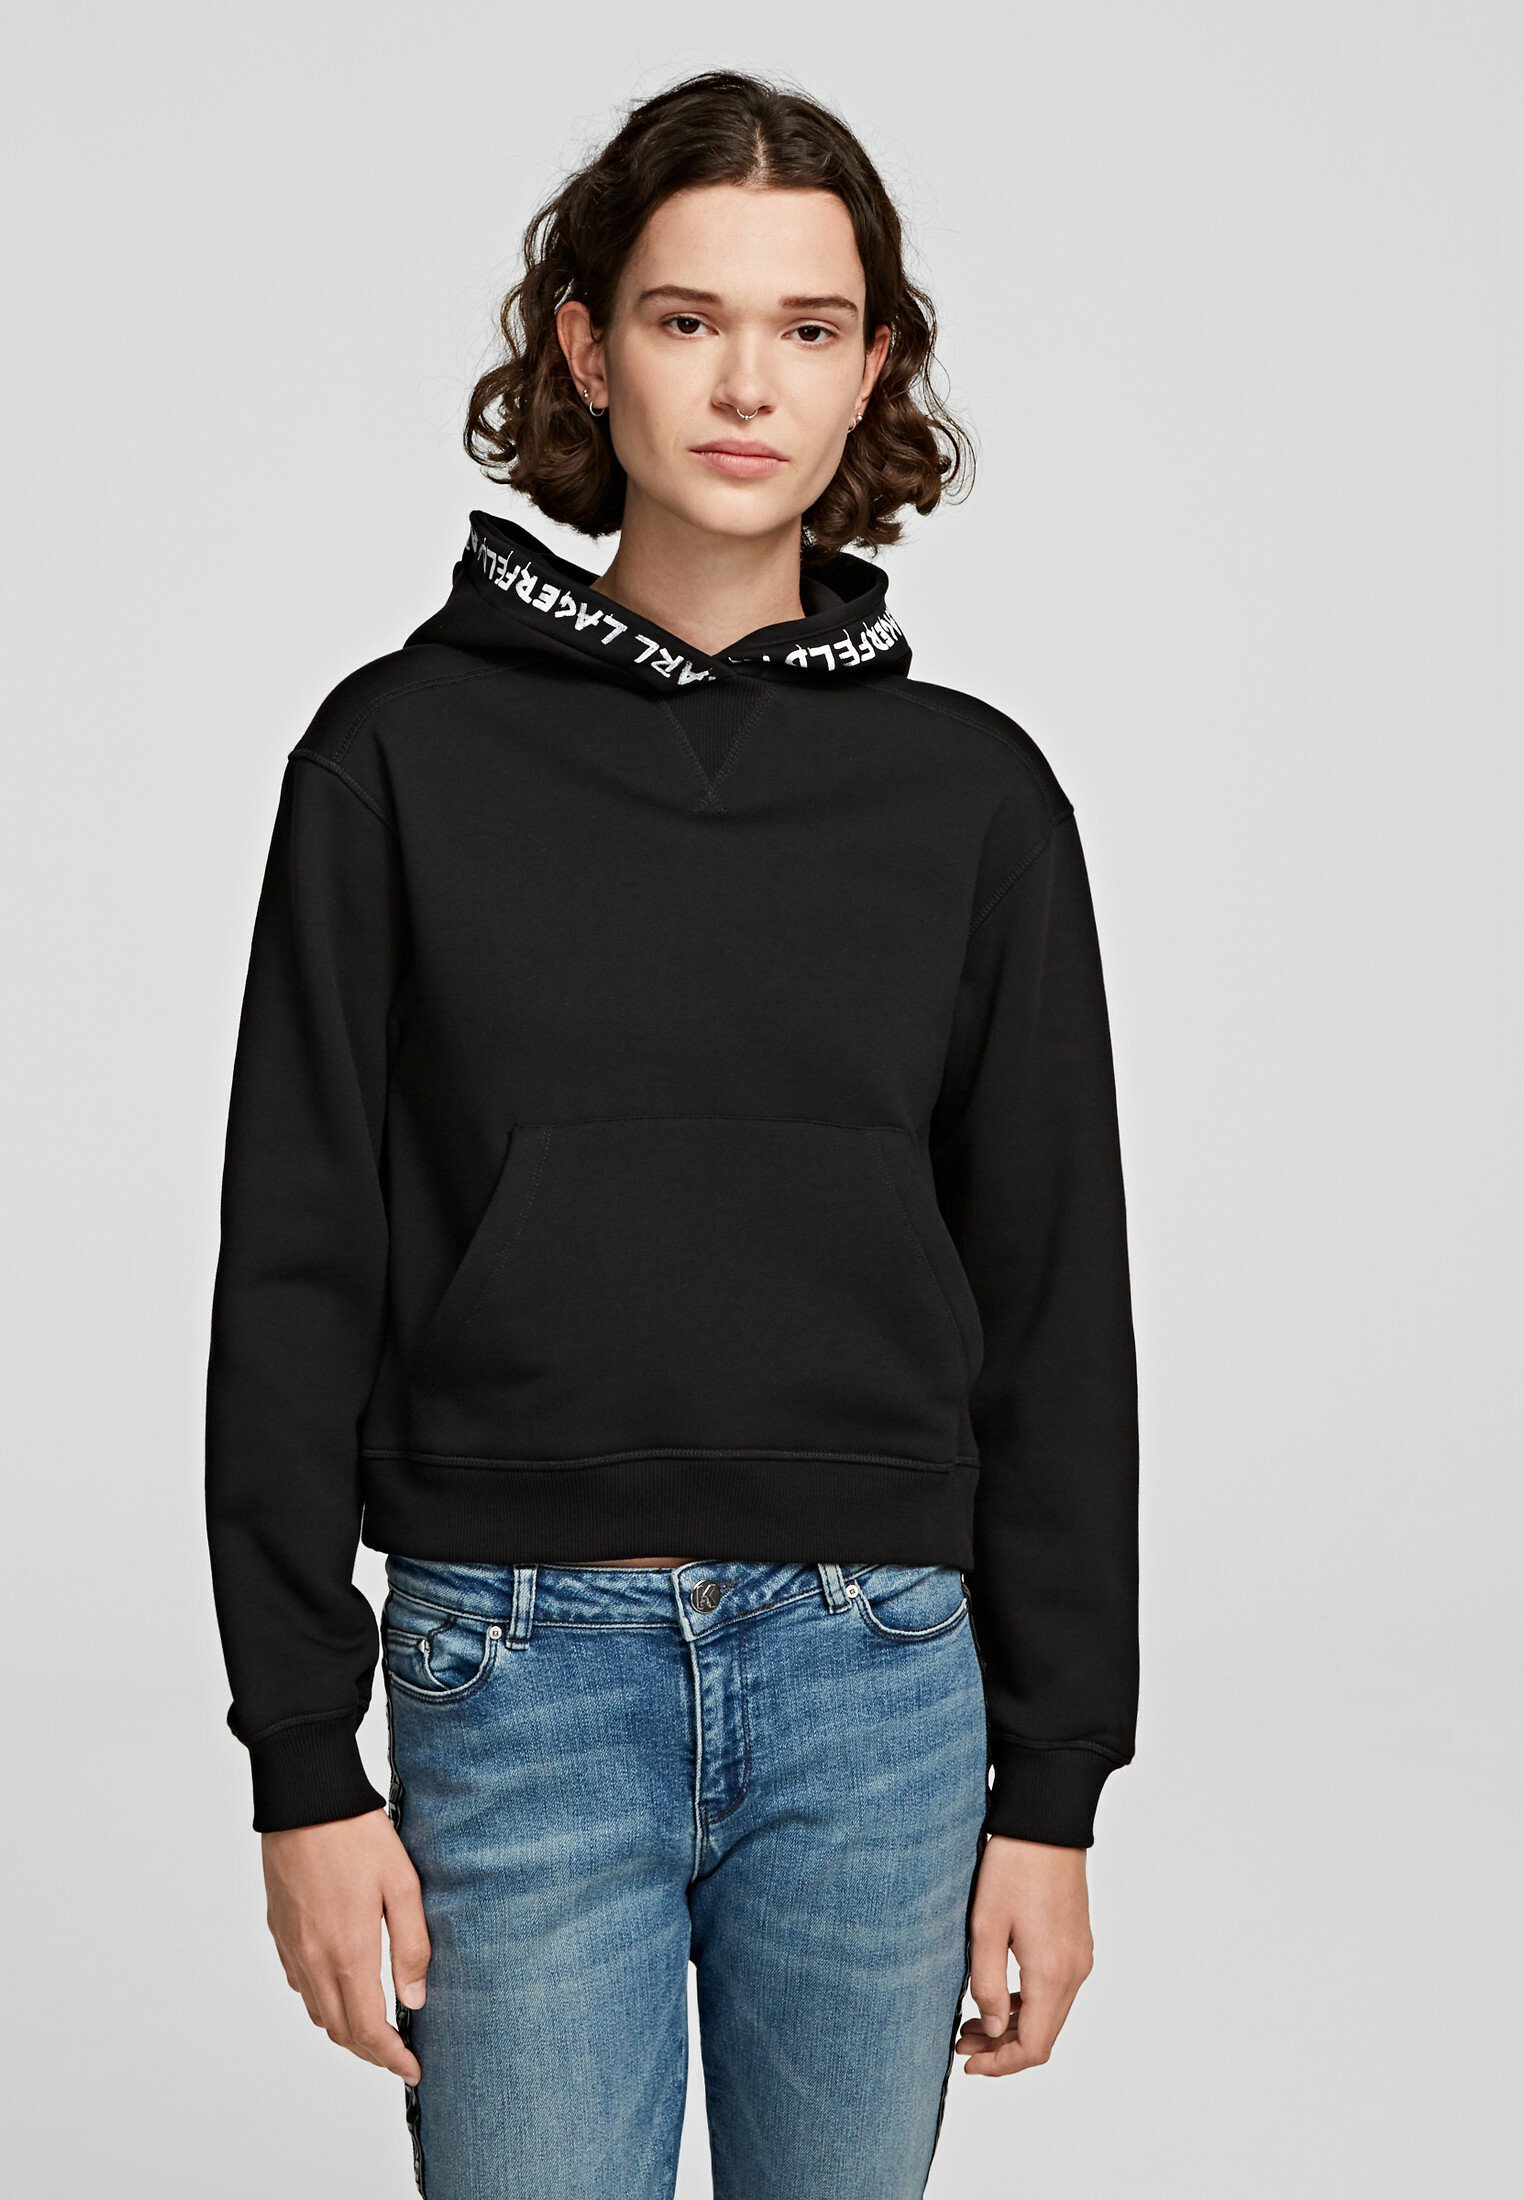 Outlet Store Women's Clothing KARL LAGERFELD Hoodie black dqLrDCgDq